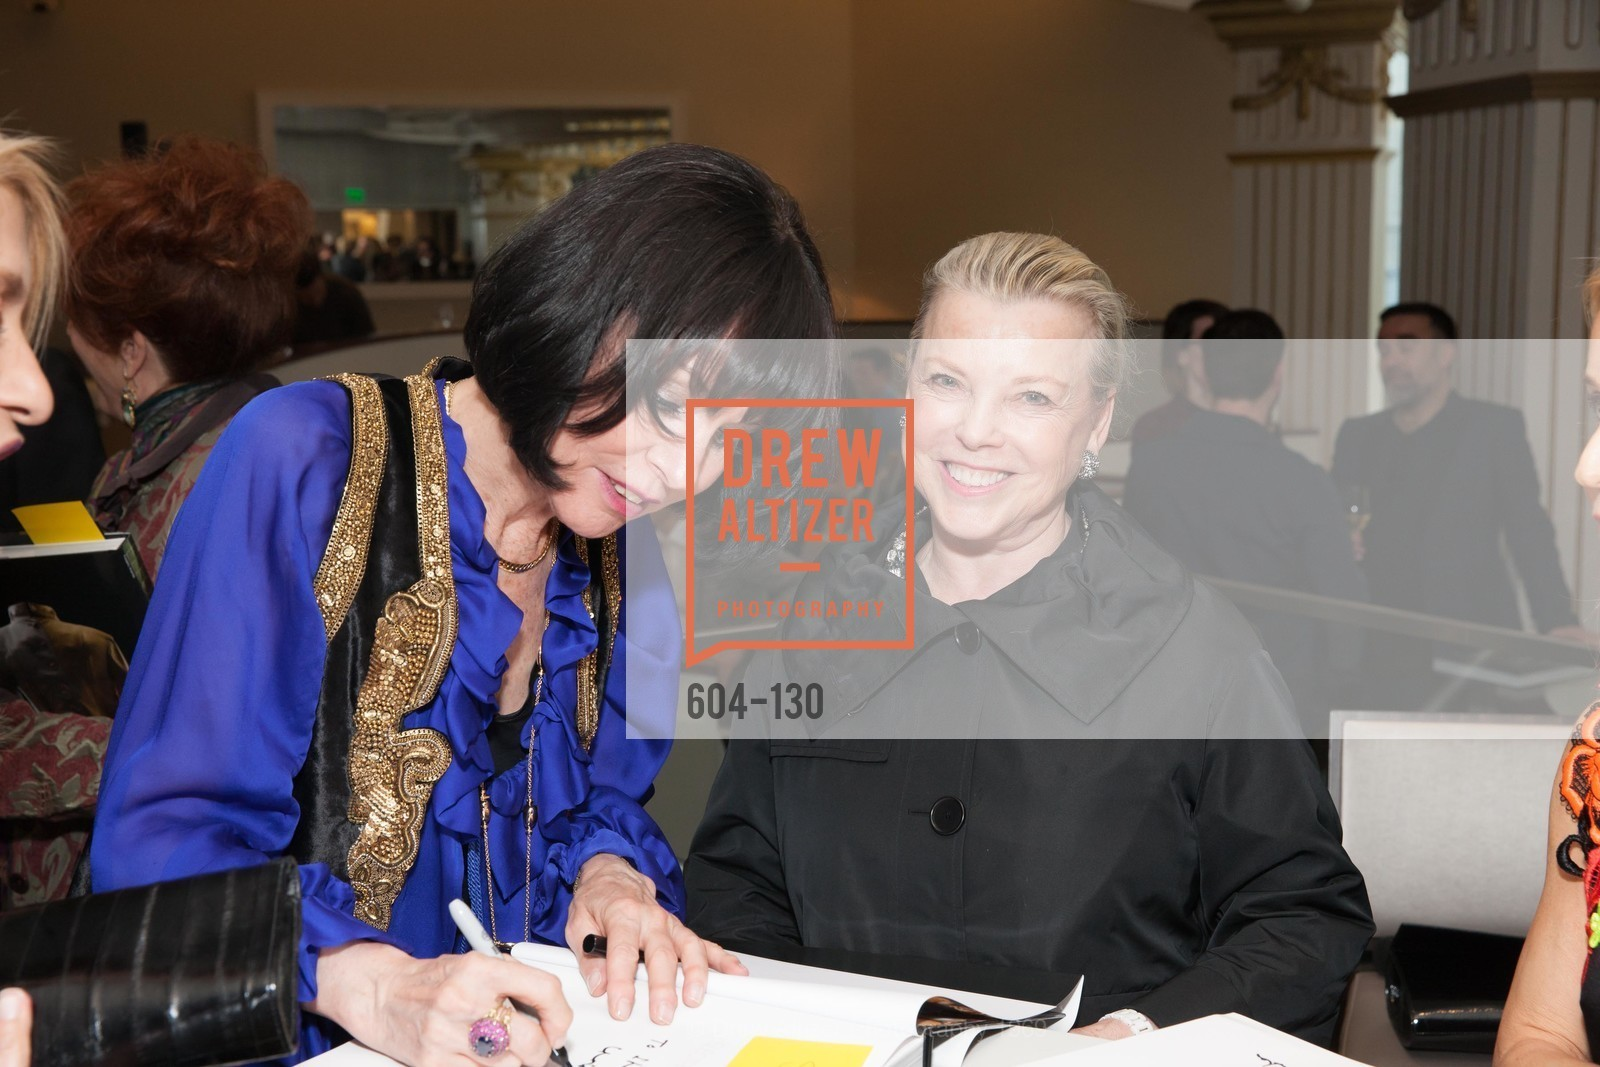 Christine Suppes, Jeanne Lawrence, Electric Fashion Book Signing with Christine Suppes & Ken Downing, Neiman Marcus, Rotunda, May 26th, 2015,Drew Altizer, Drew Altizer Photography, full-service agency, private events, San Francisco photographer, photographer california